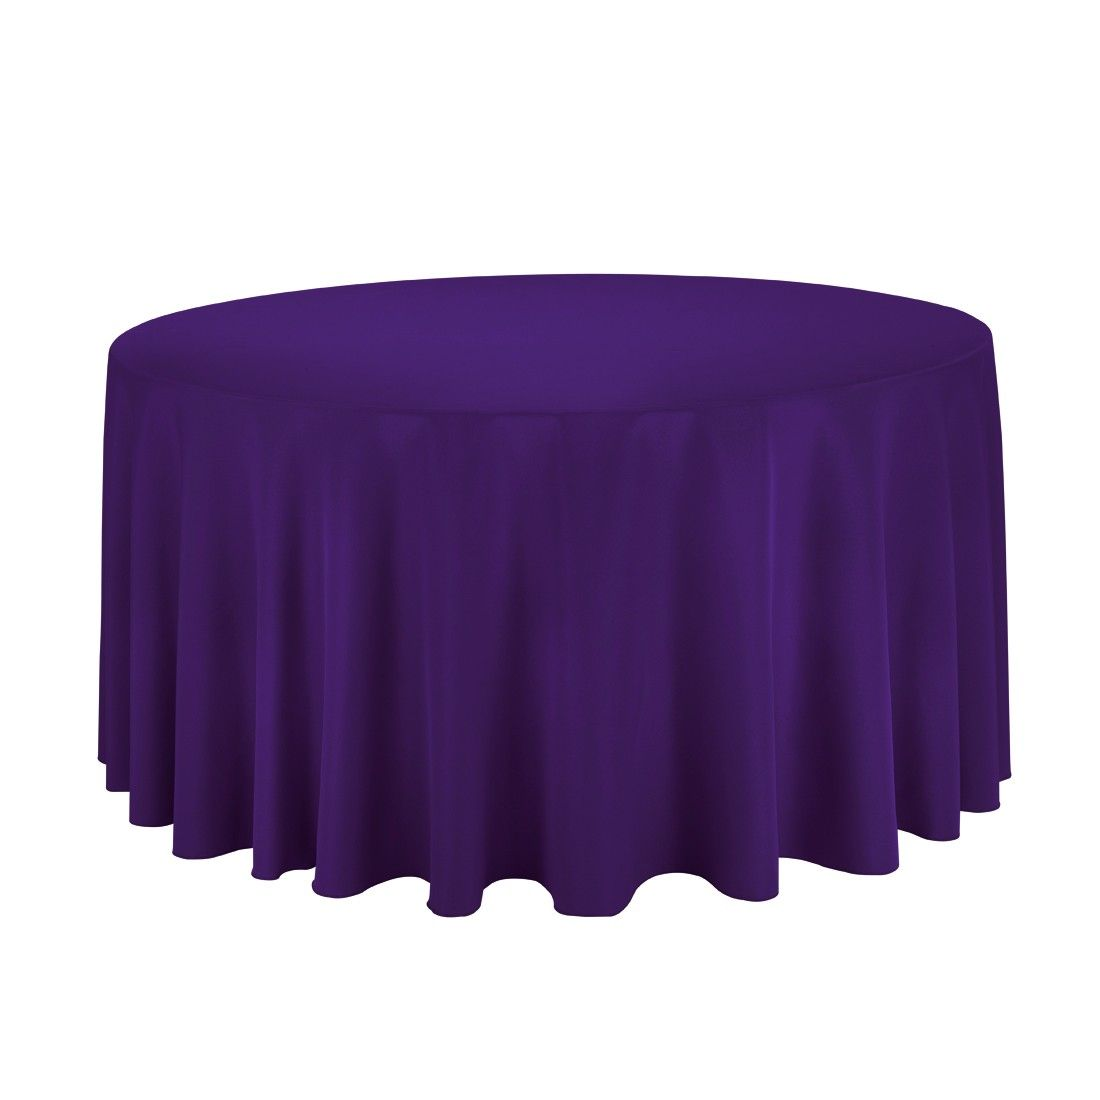 120 Inch Round Polyester Tablecloth Purple On A 60 Inch Round Table